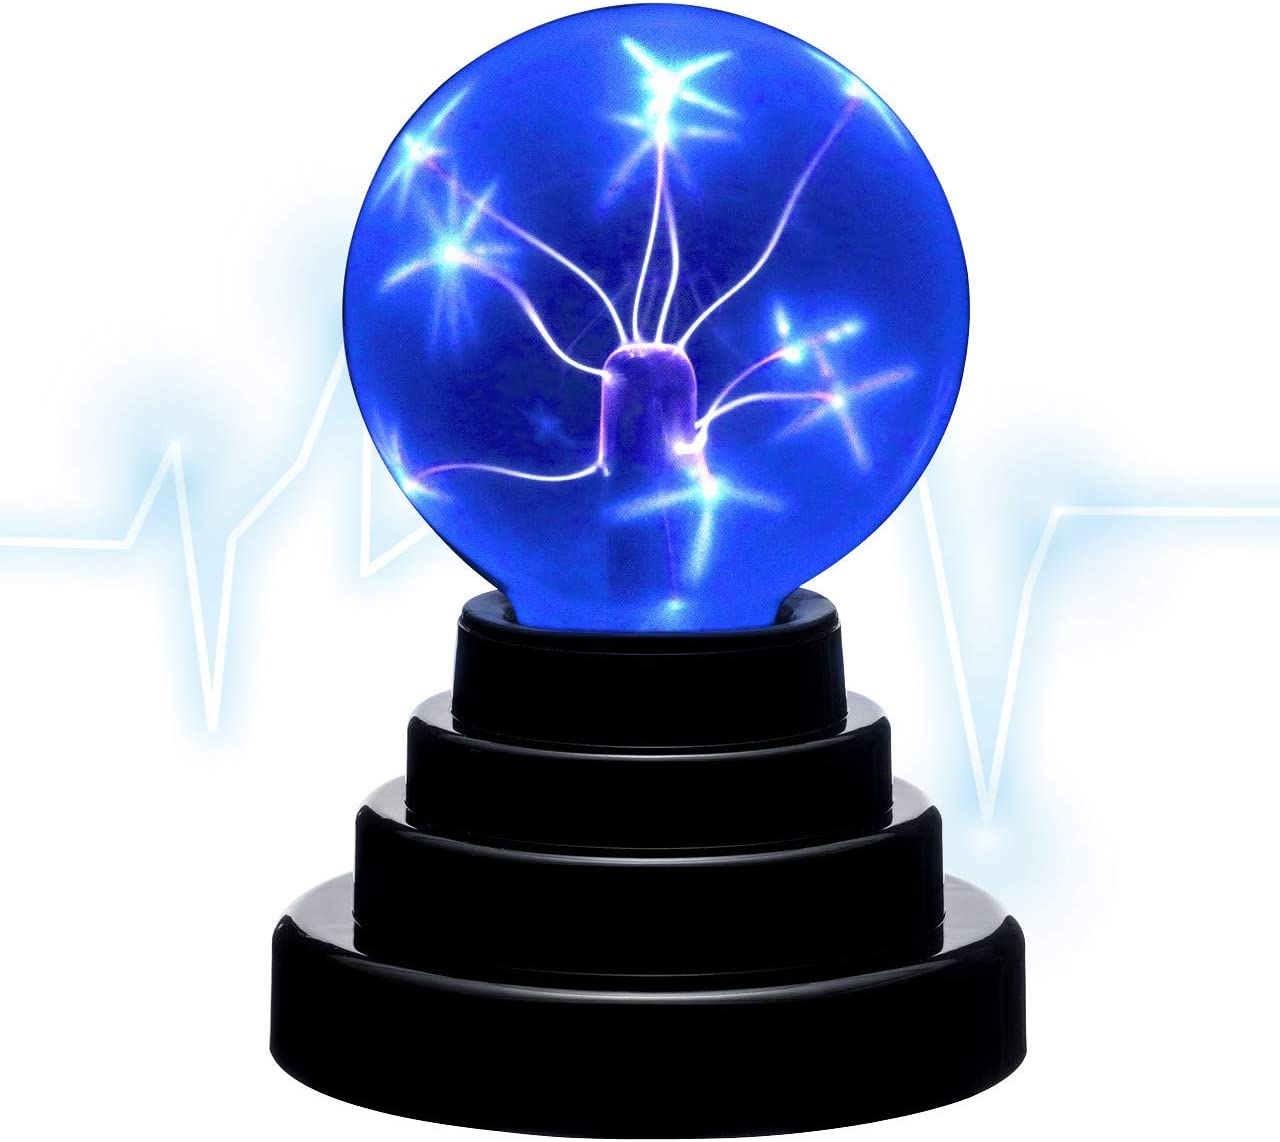 Mangsen Blue Light Plasma Ball 3 Inch Magic Touch Sensitive USB/Battery Powered Glass Nebula Static Electricity Sphere for Party/Bedroom/Decor